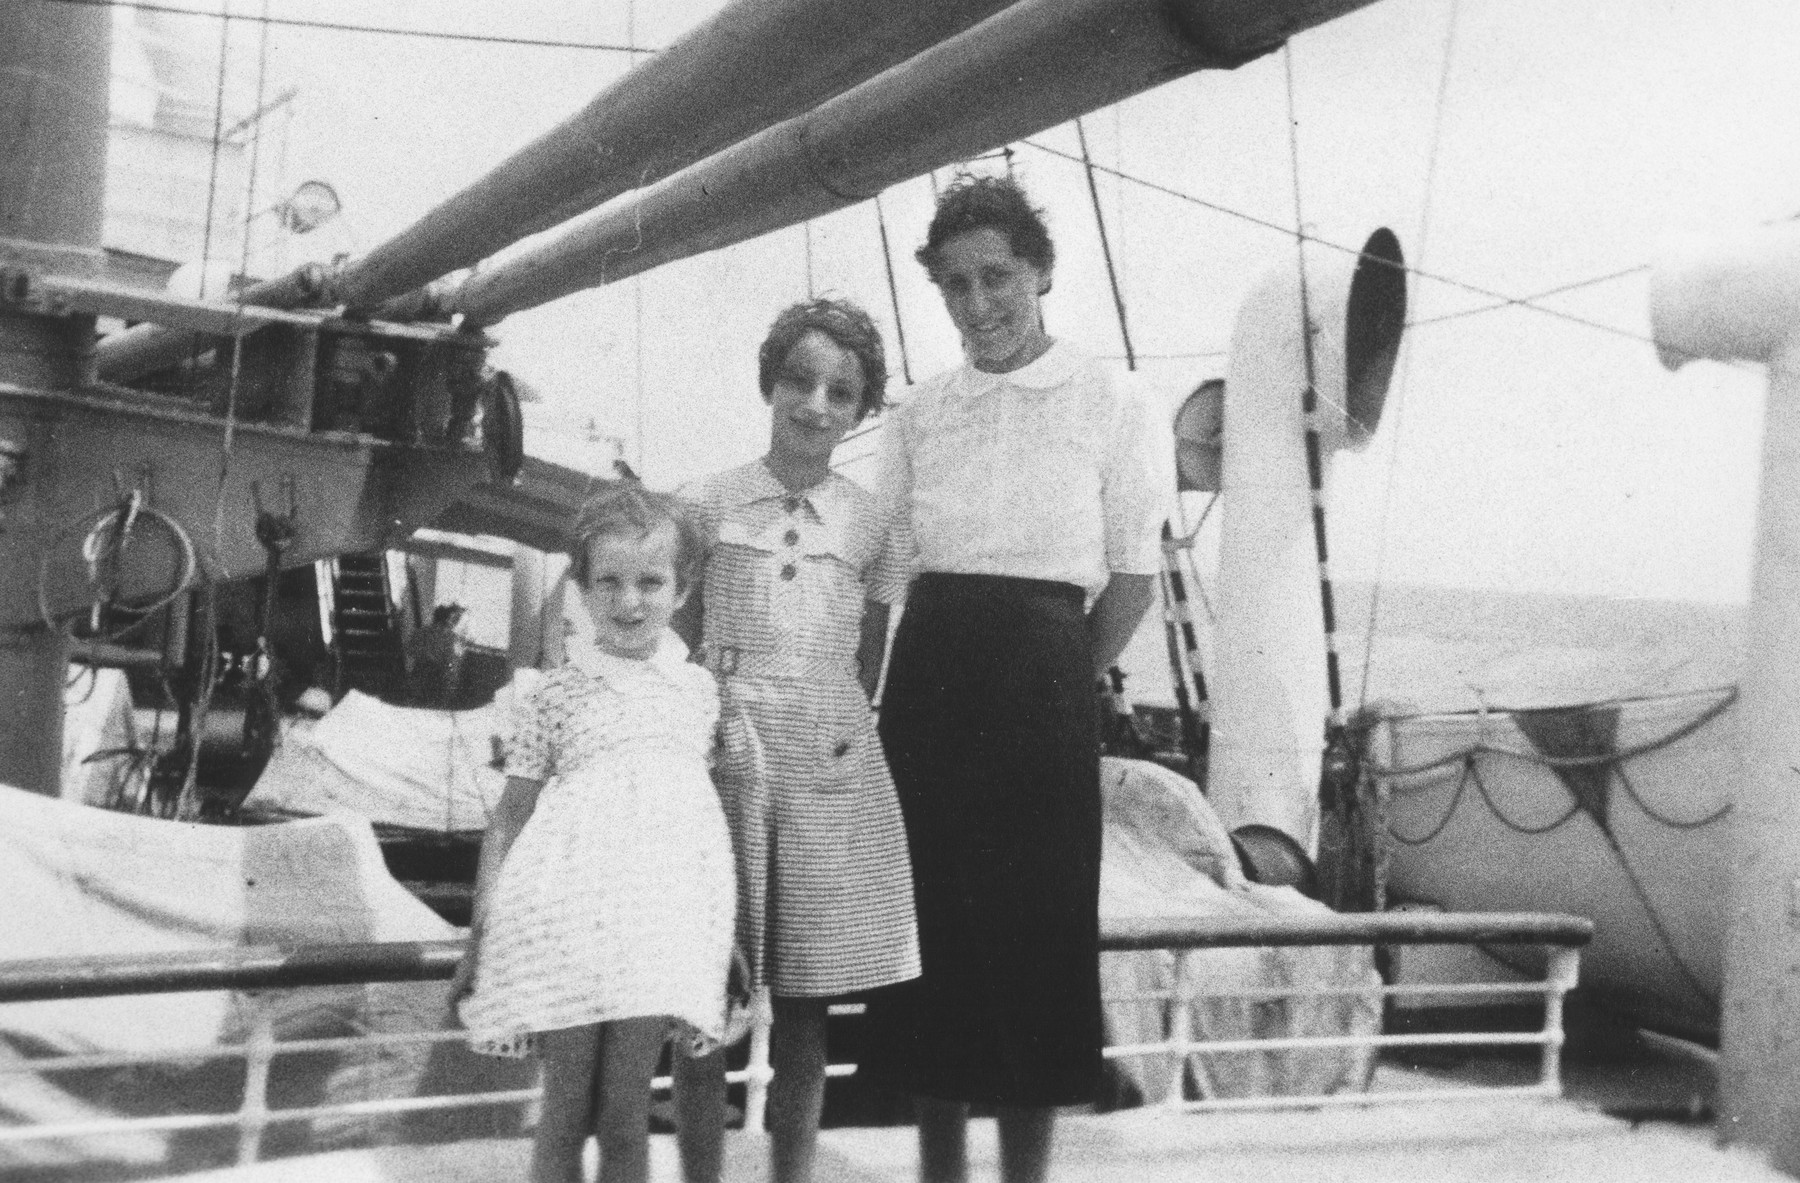 A Jewish refugee family sails aboard the Usambara to Kenya.  Pictured are Klara, Inge and Gisela Berg.